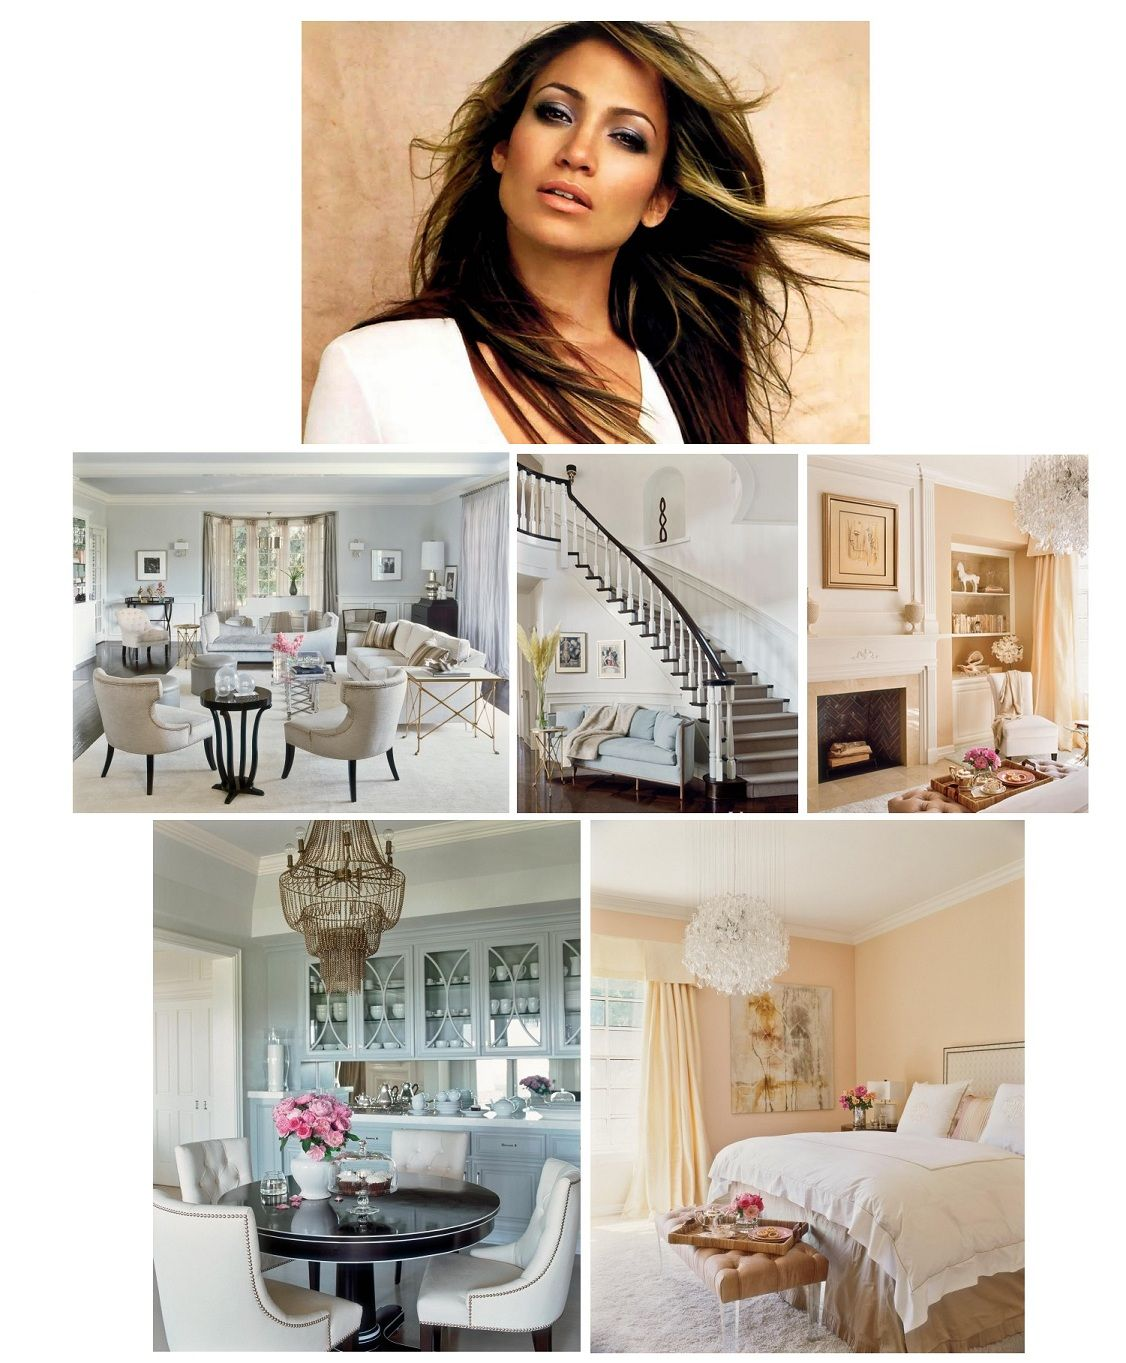 Jennifer Lopez Home Decor This Is Definitely Far From Jenny From The Block Celebrity Houses Home Interior Design Luxury Home Decor